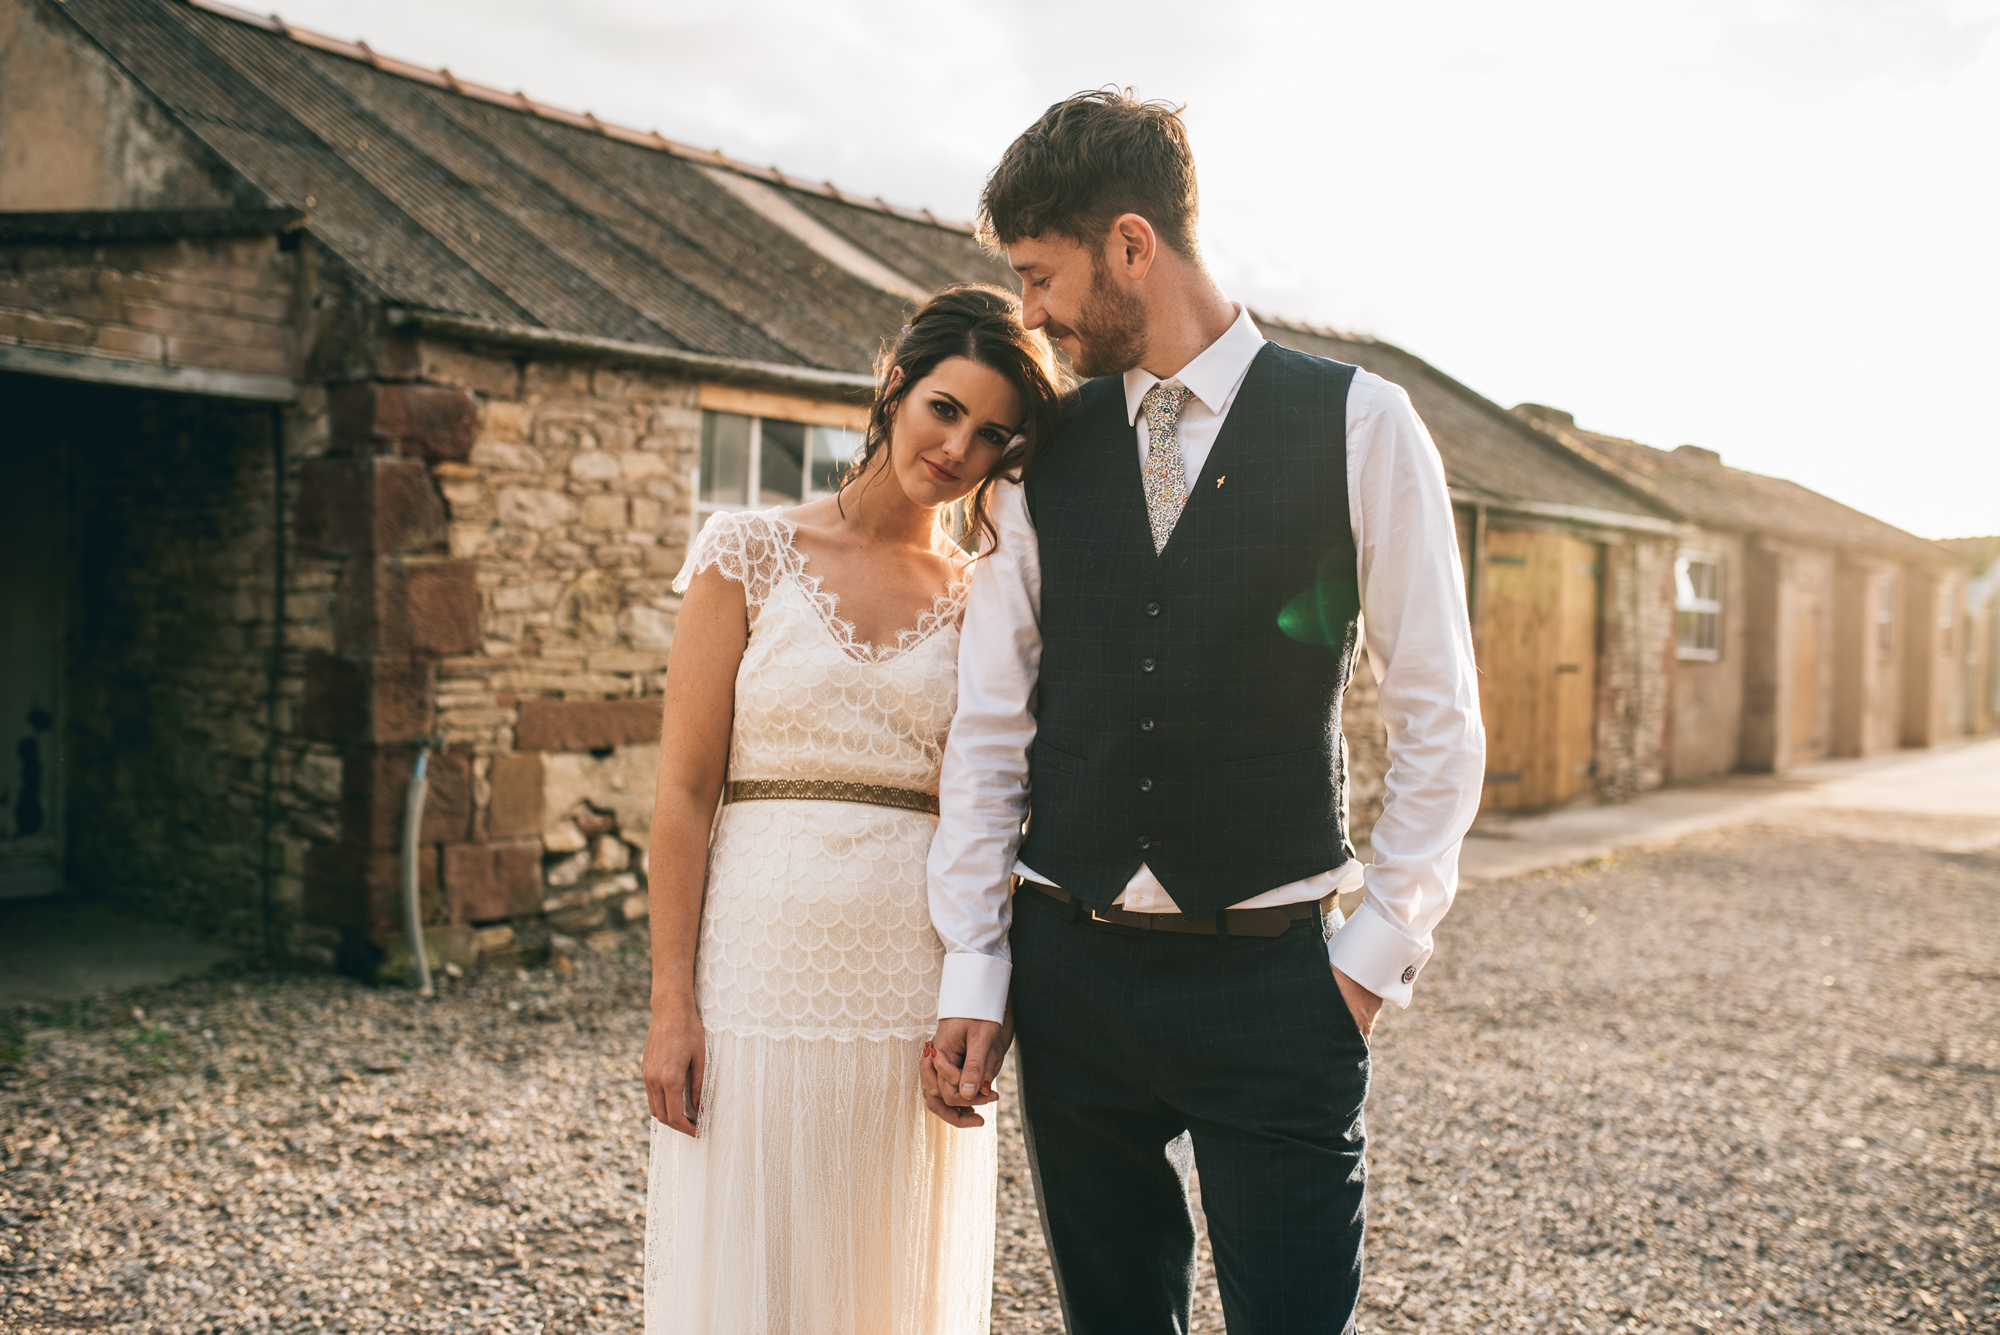 Kate-Beaumont-Sheffield-Lucy-Bohemian-Lace-Dress-Barn-Wedding-Cumbria-46.jpg